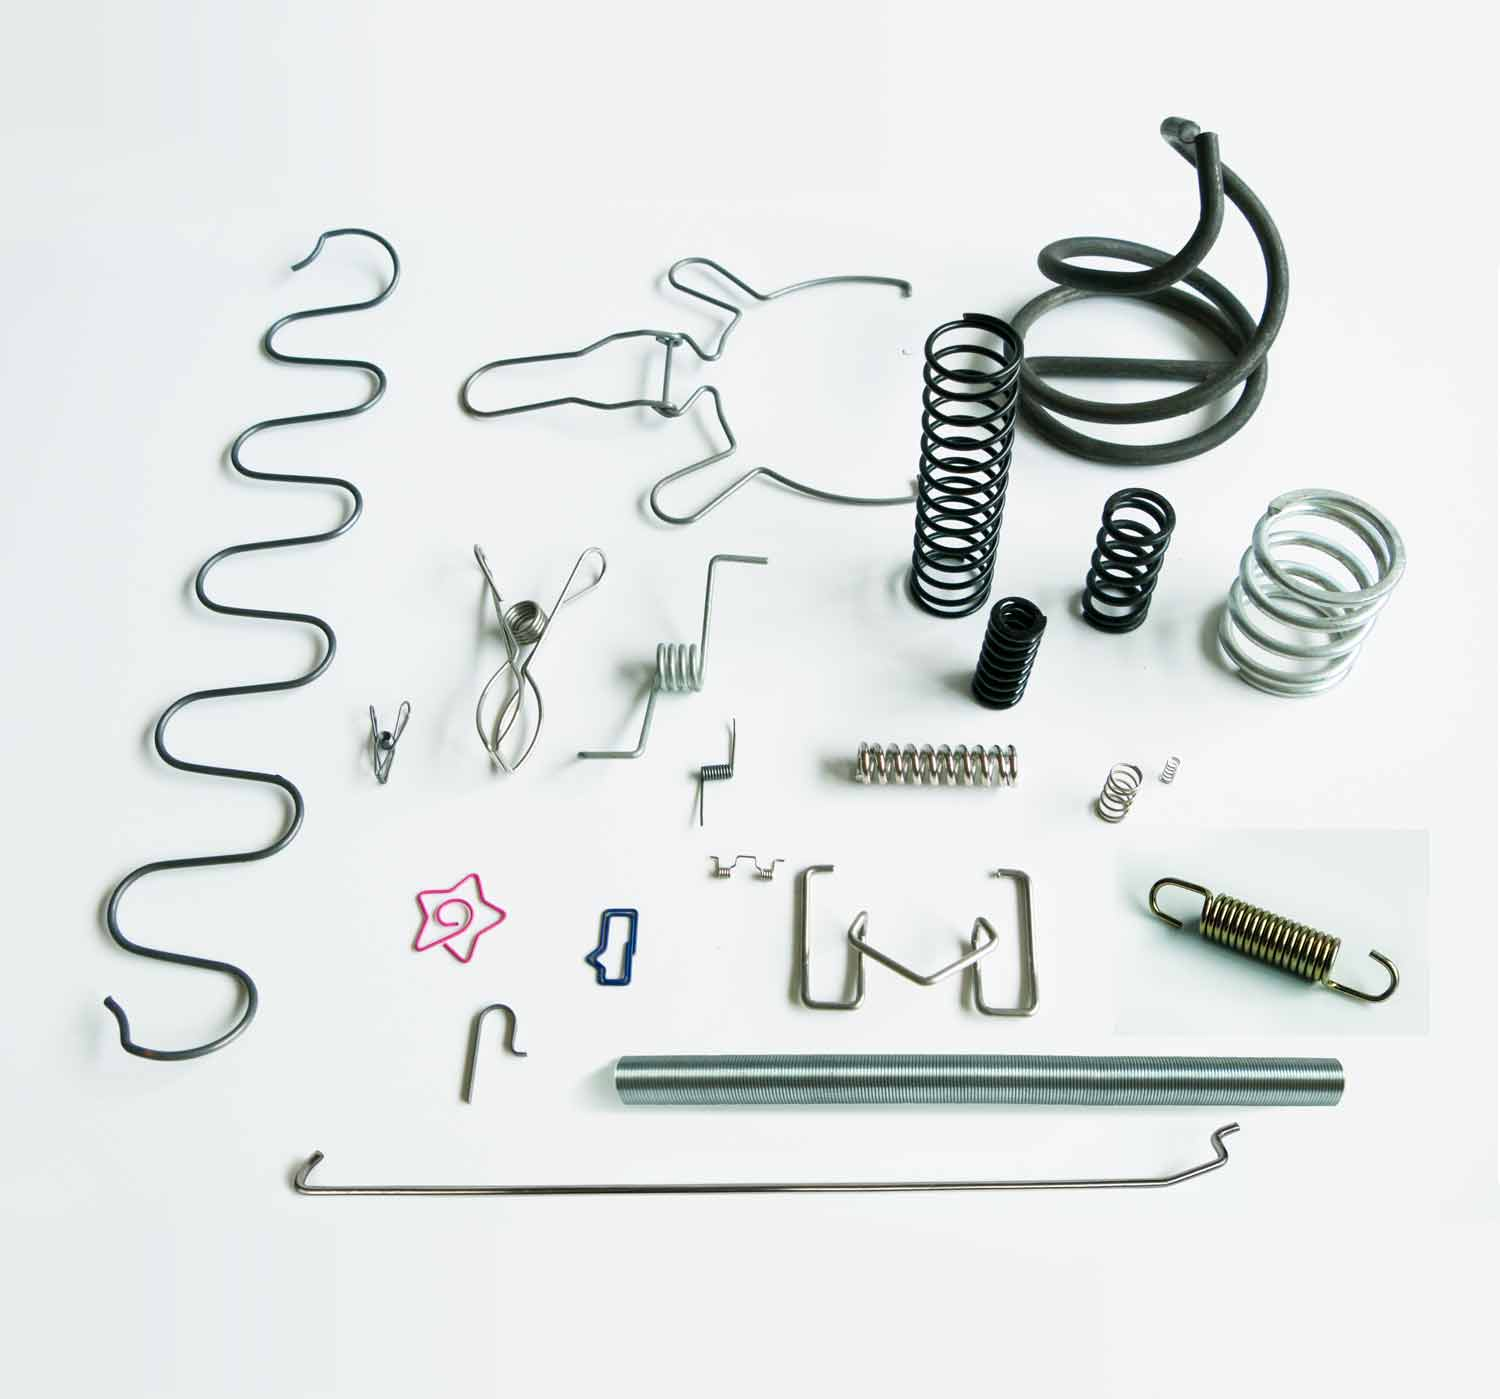 custom wire forming and springs different samples